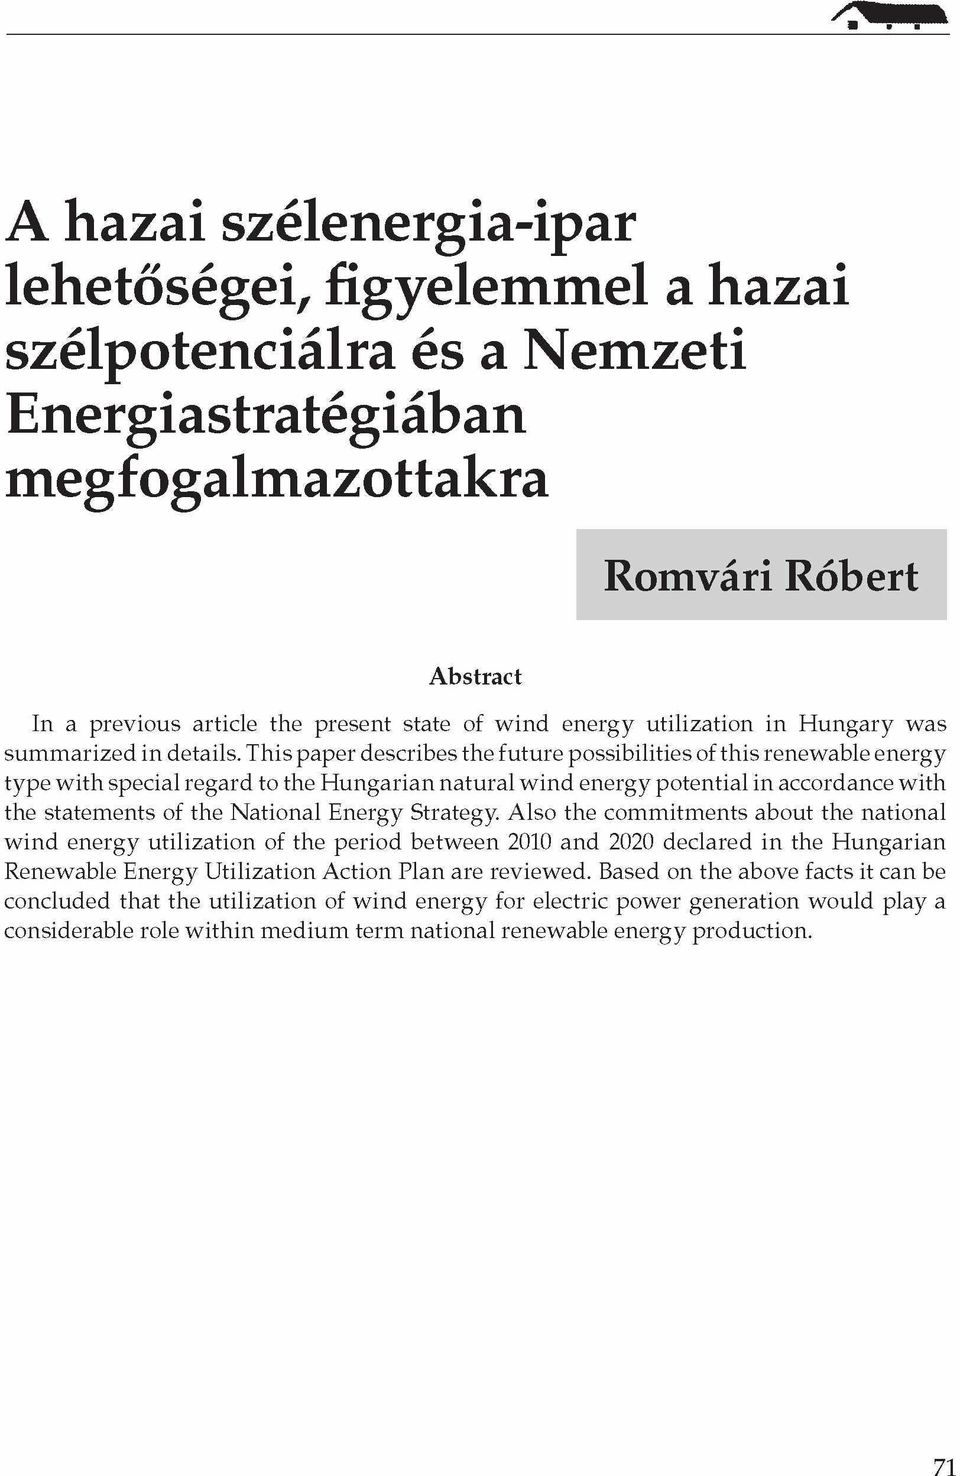 This paper describes the future possibilities of this renewable energy type with special regard to the Hungarian natural wind energy potential in accordance with the statements of the National Energy